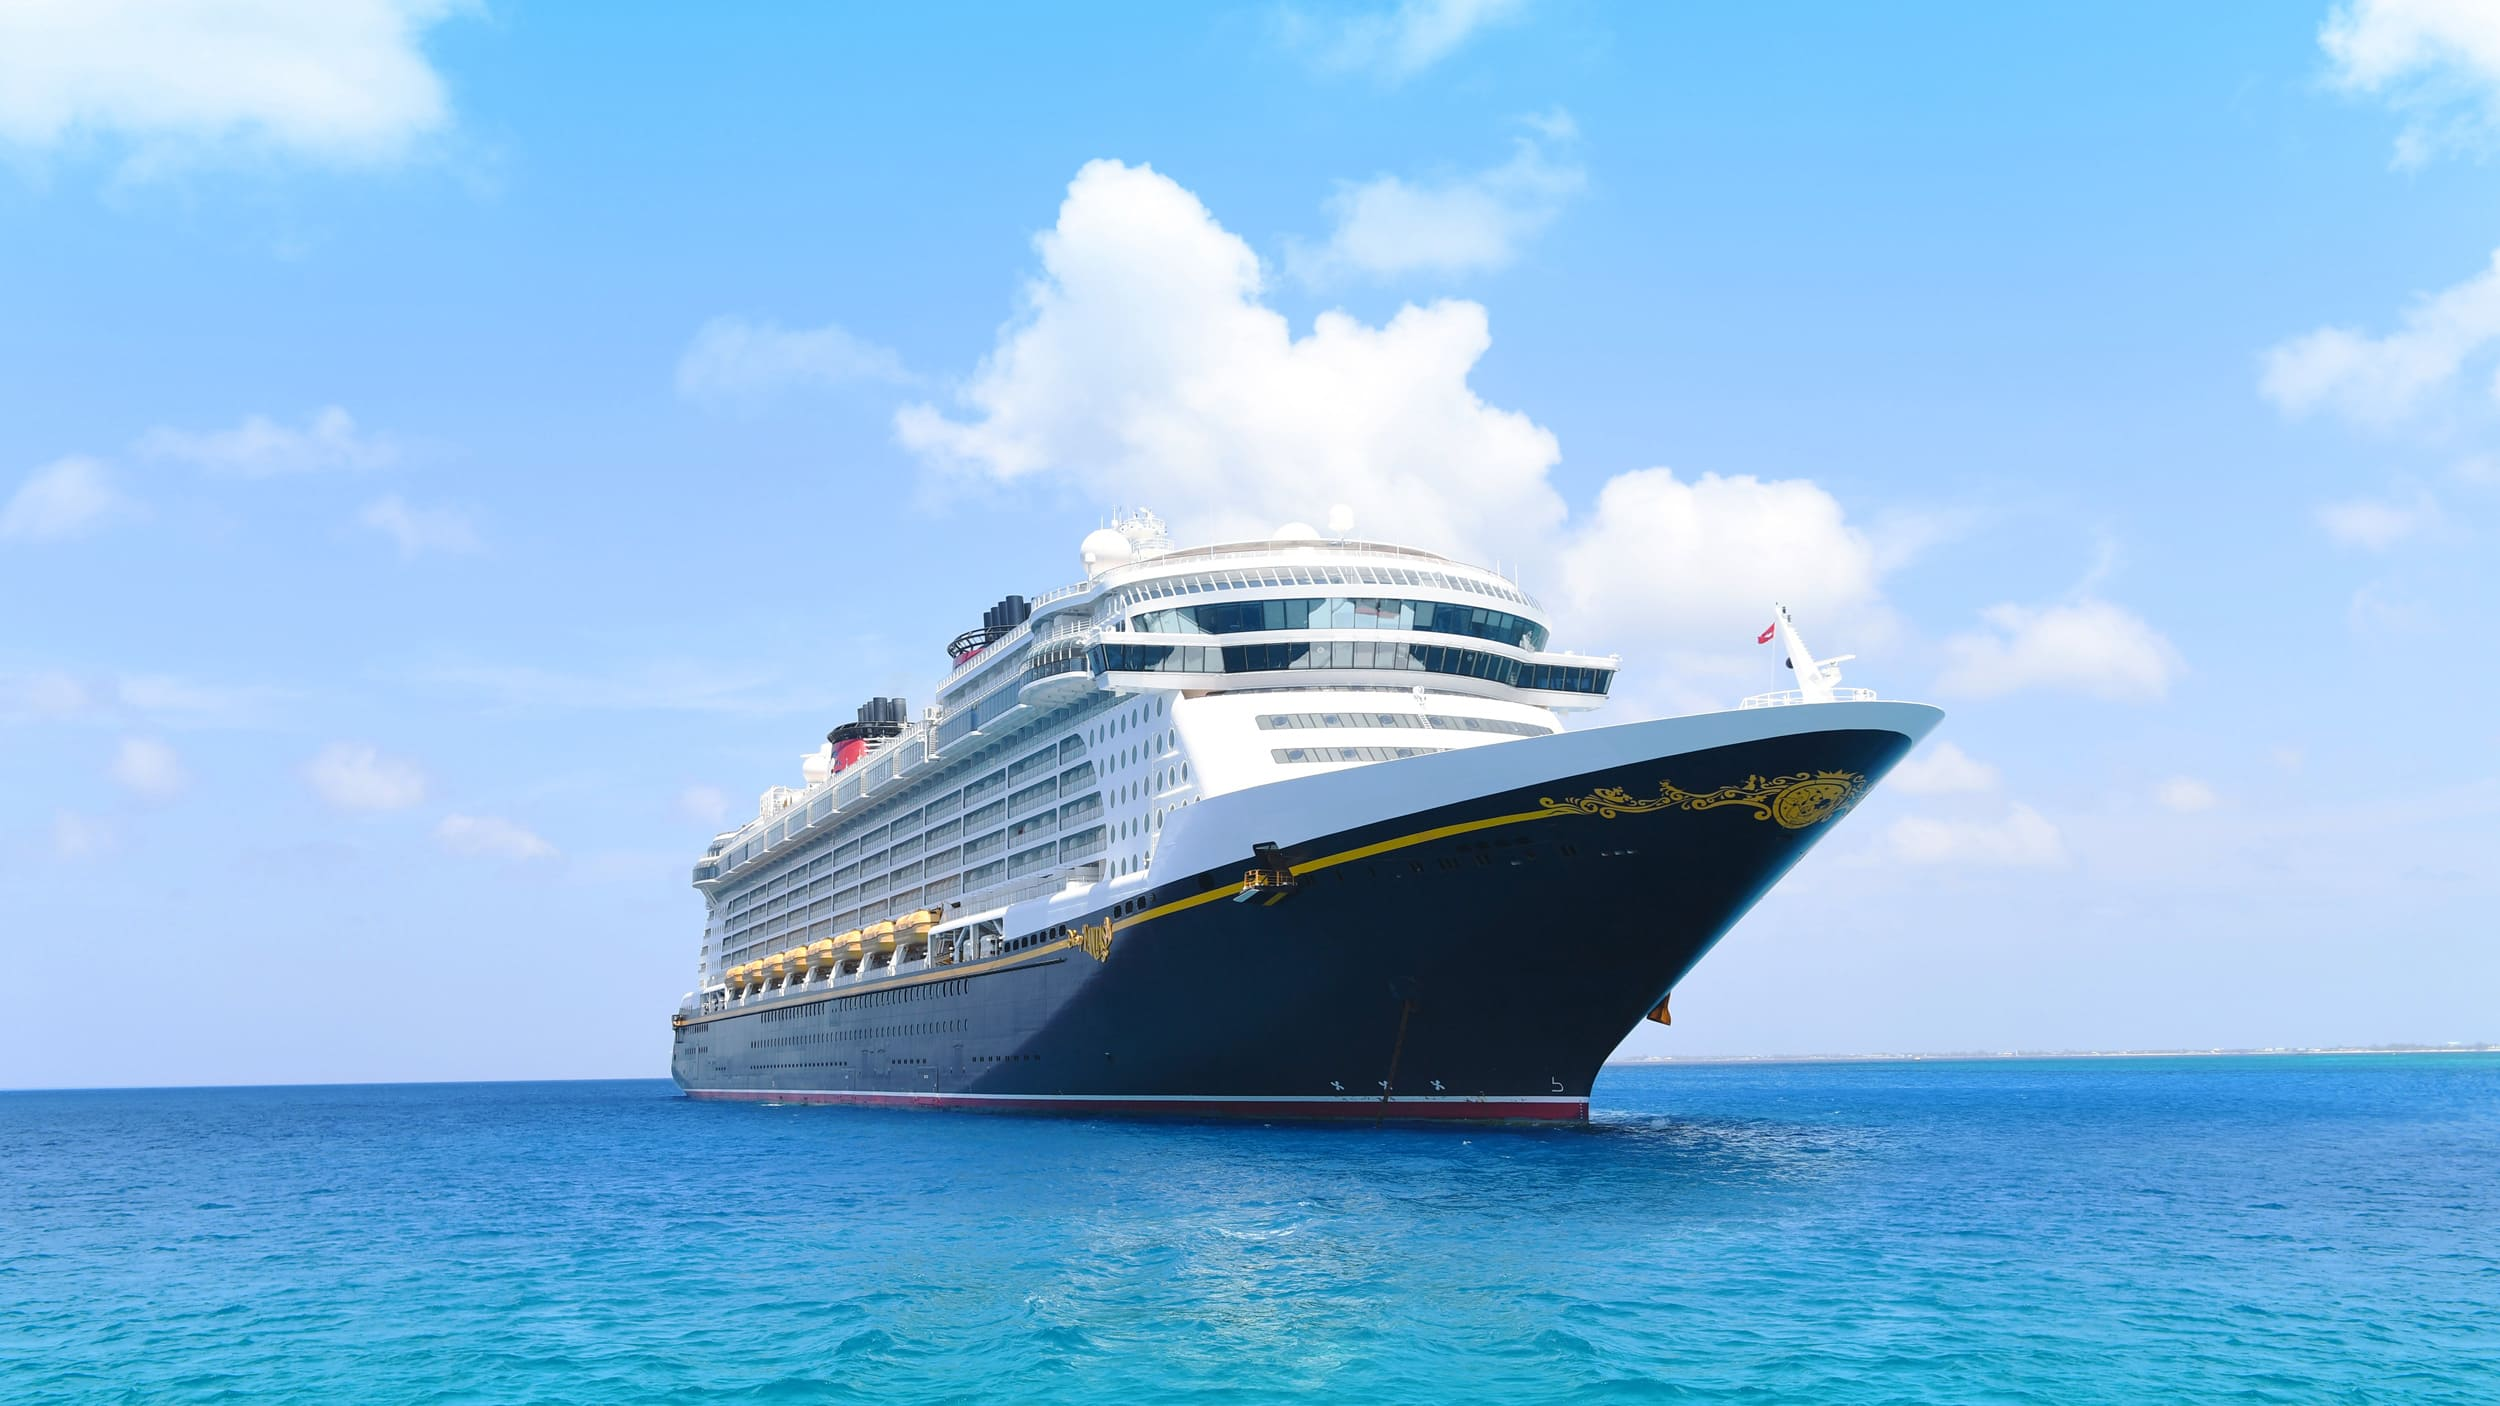 A Disney Cruise Line ship in open waters